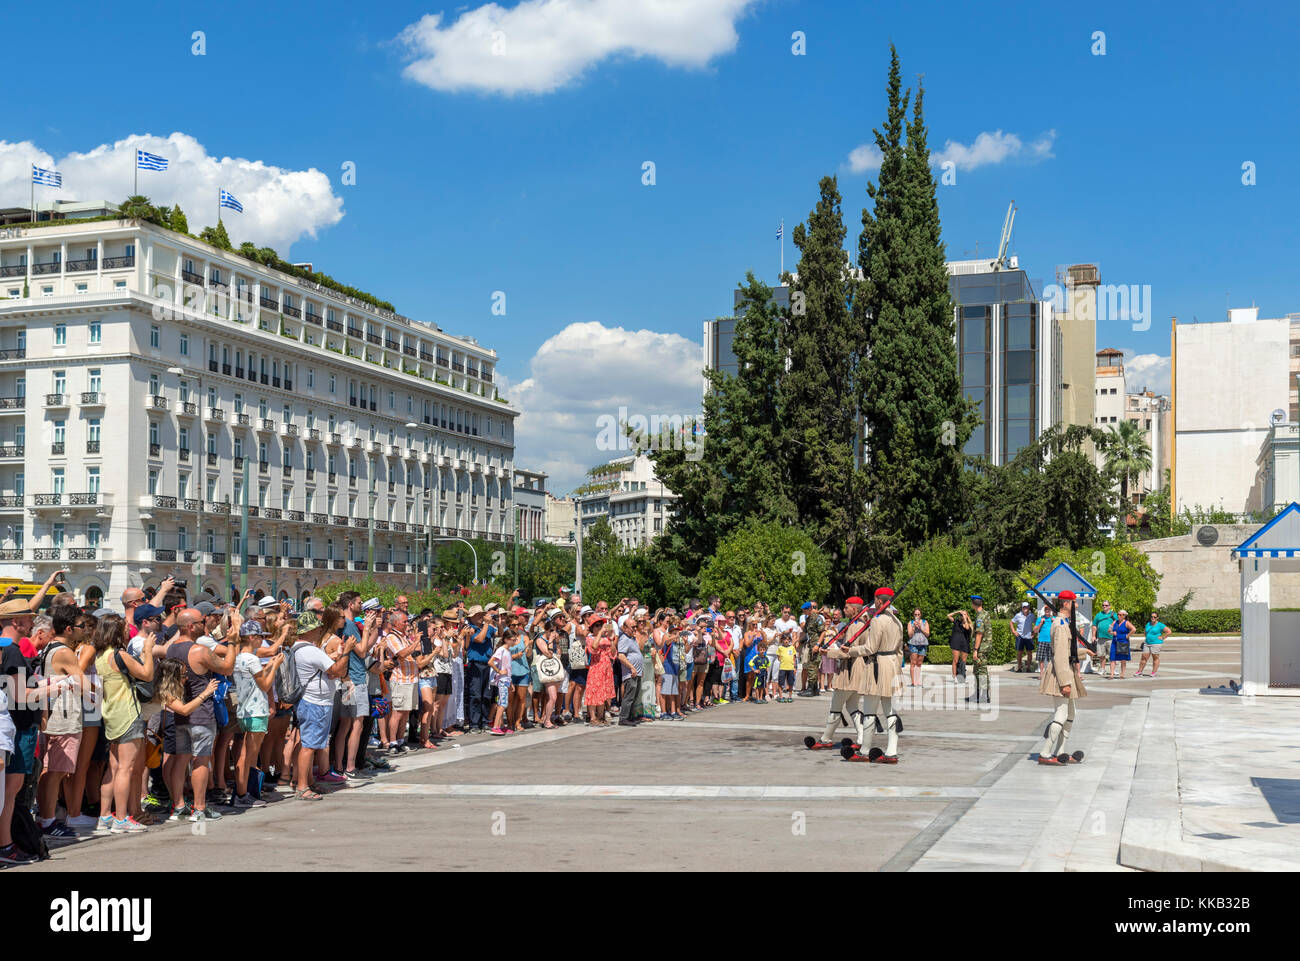 Tourists watching the changing of the guard at the Tomb of the Unknown Soldier, Syntagma Square, Athens, Greece Stock Photo